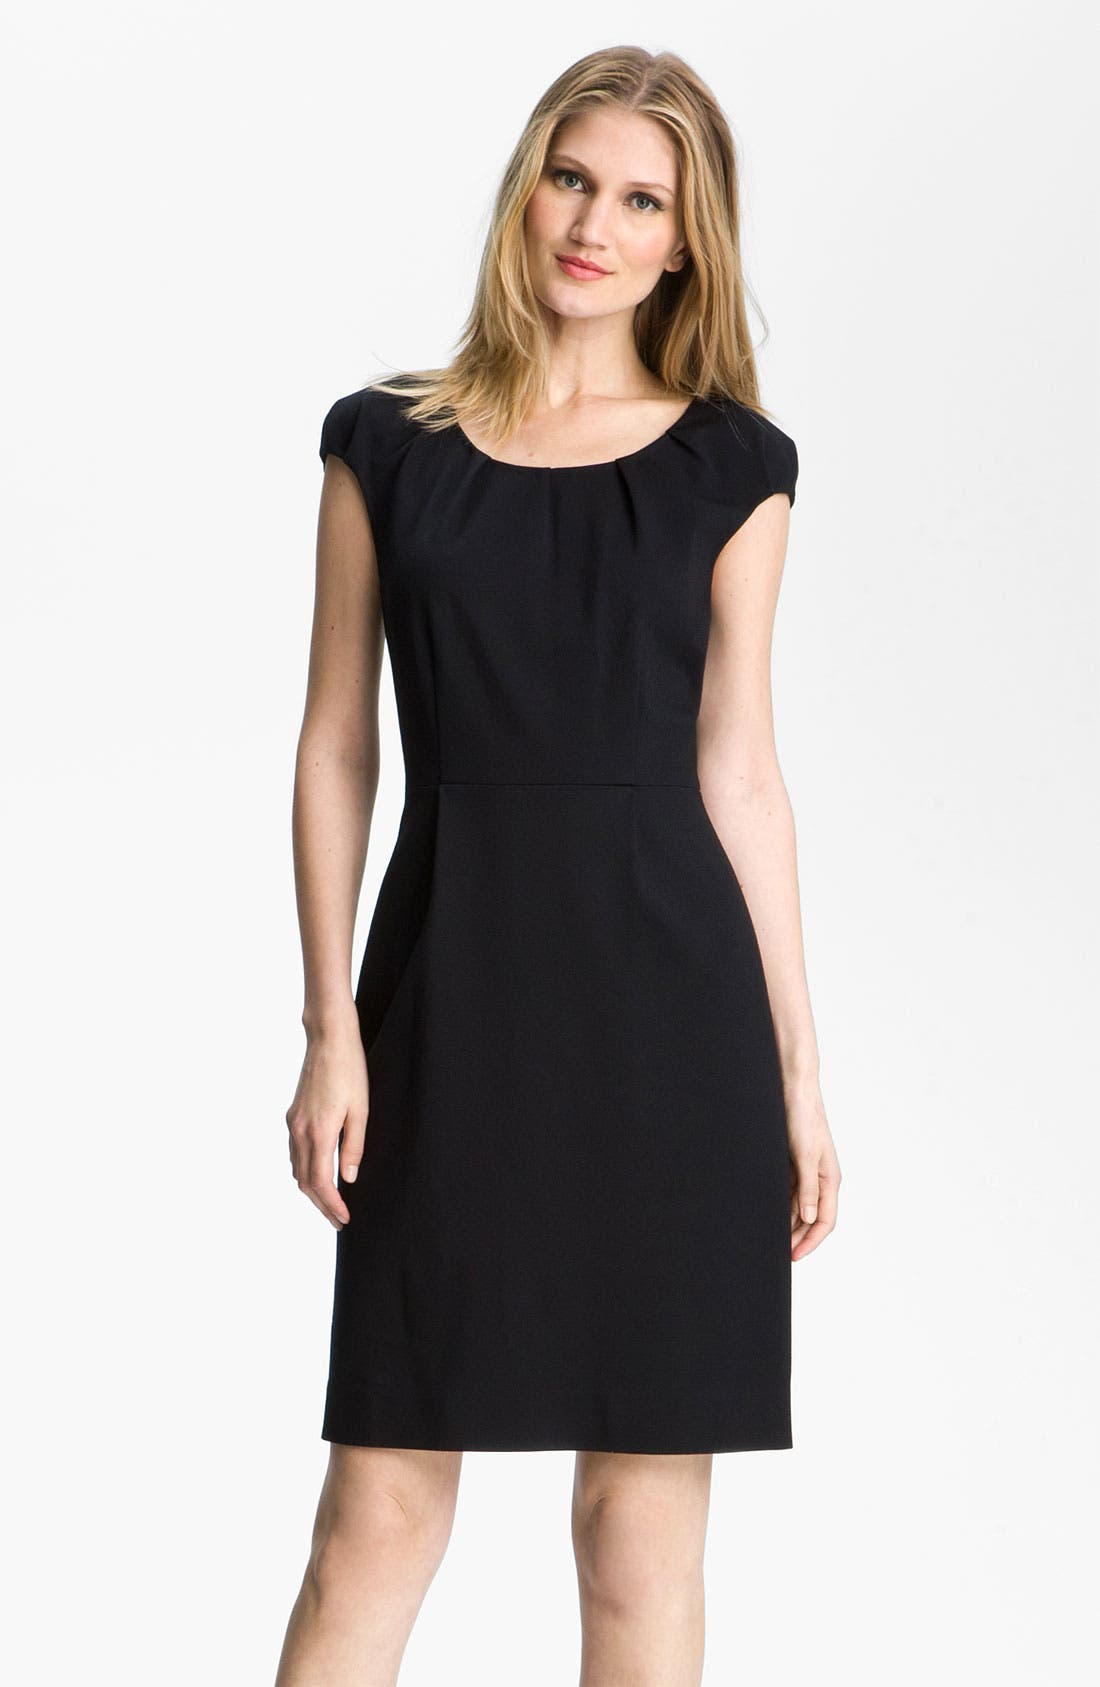 Alternate Image 1 Selected - kate spade new york 'taylor' sheath dress